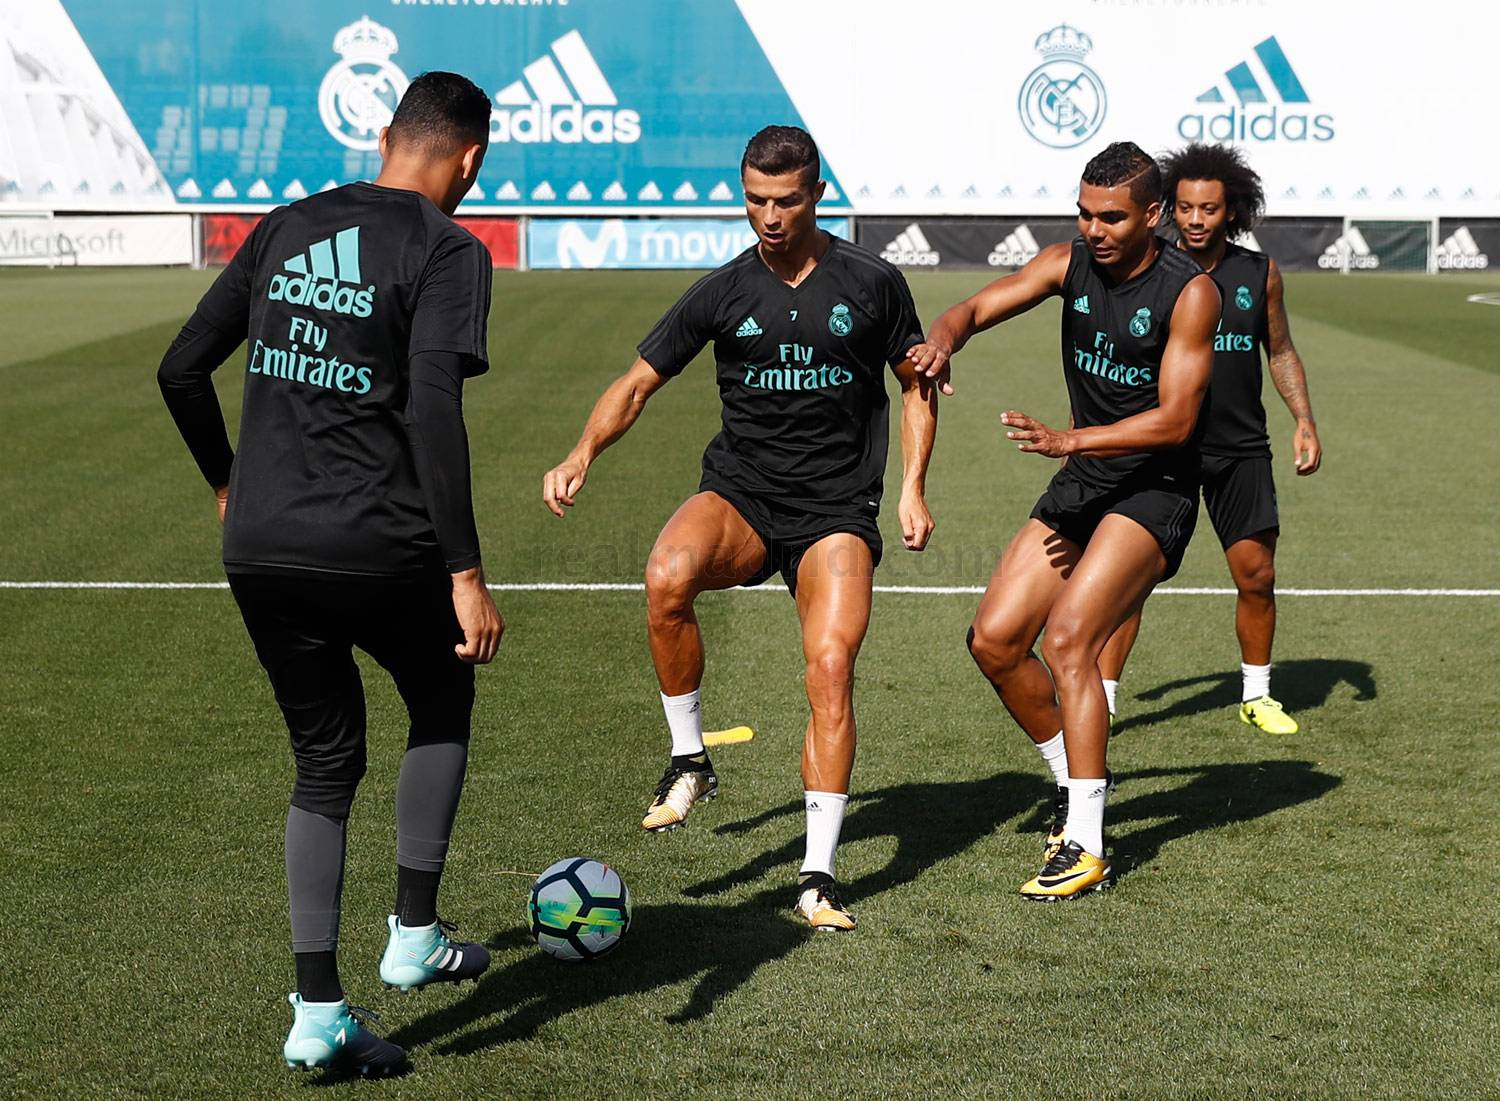 Real Madrid - Entrenamiento del Real Madrid - 18-08-2017